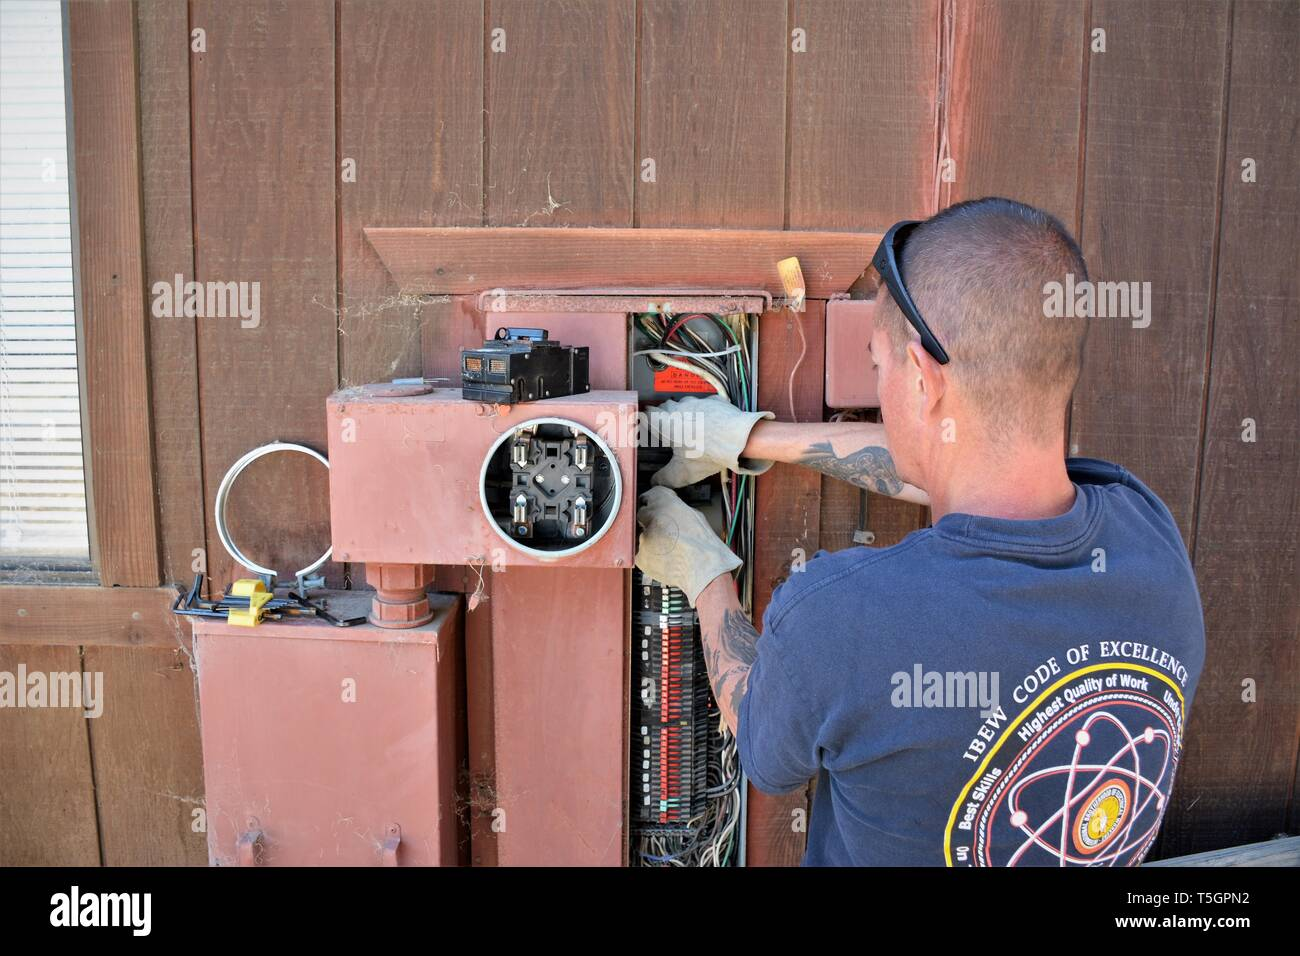 hight resolution of repairs being done to faulty wiring in older home by trained and certified electrical workers